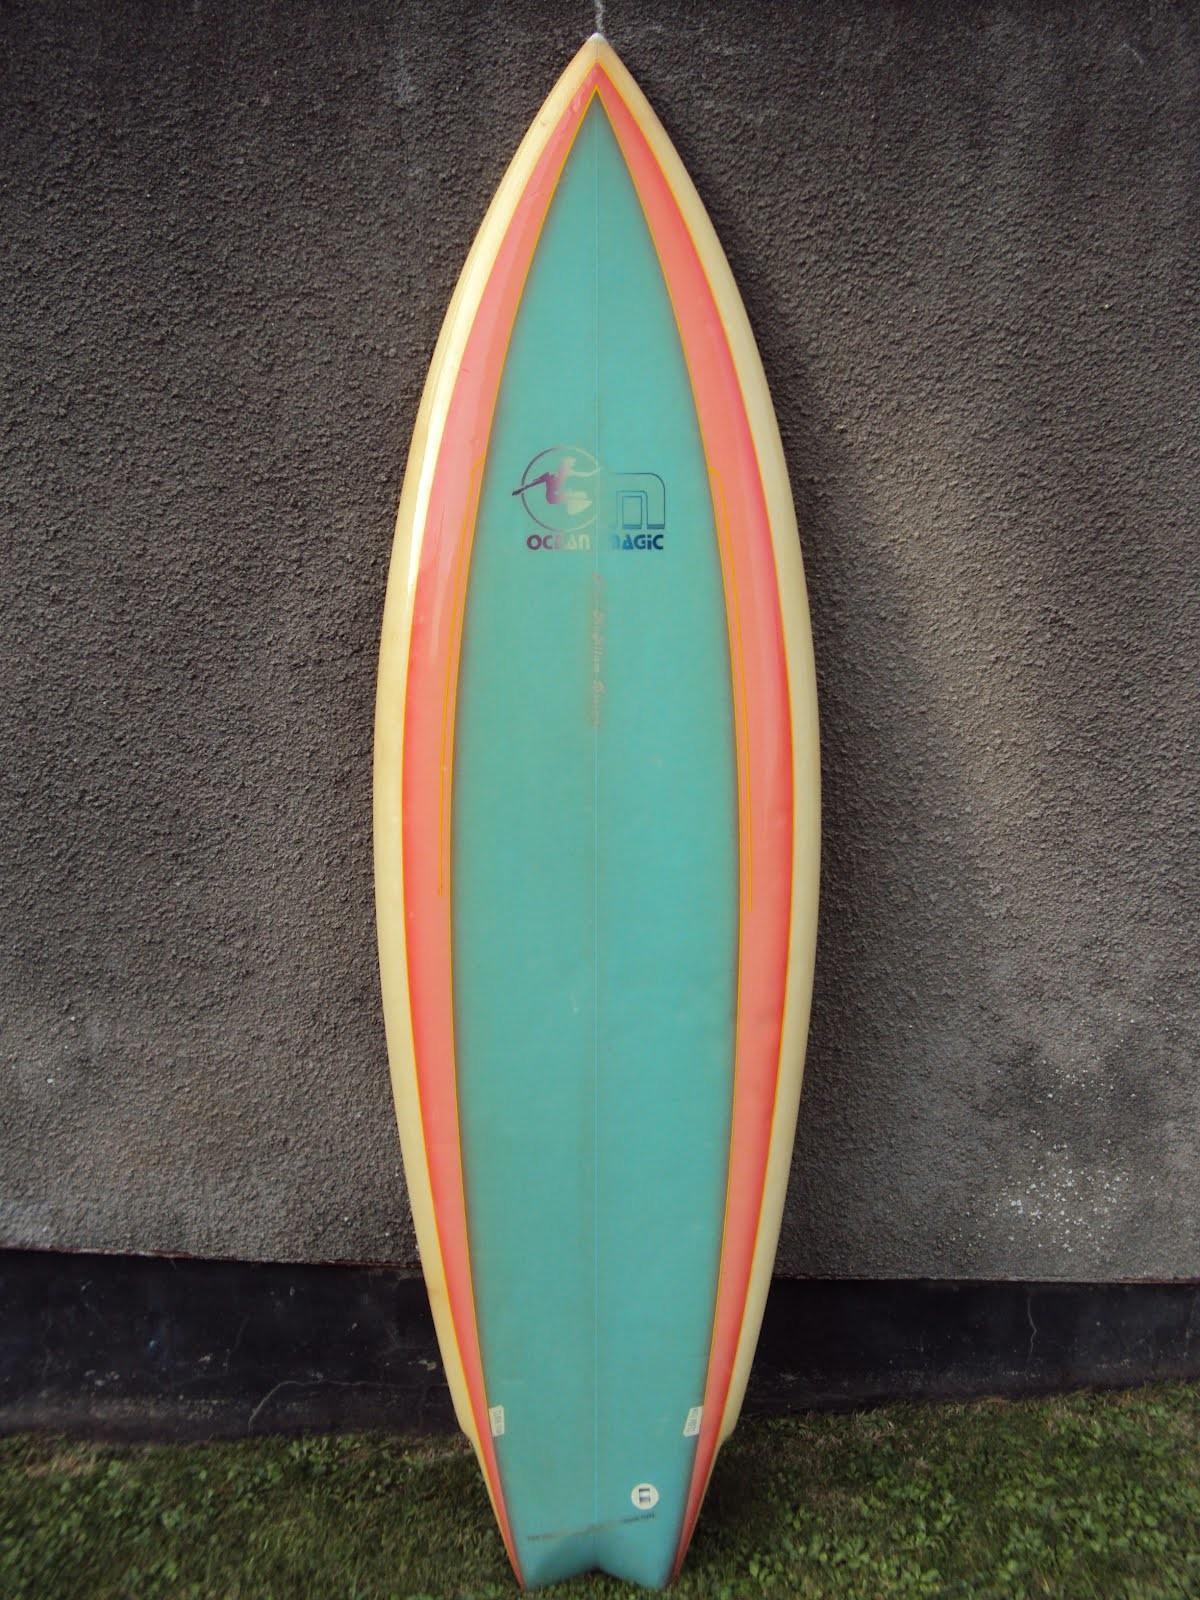 Related Cool Surfboard Design Idea Simple